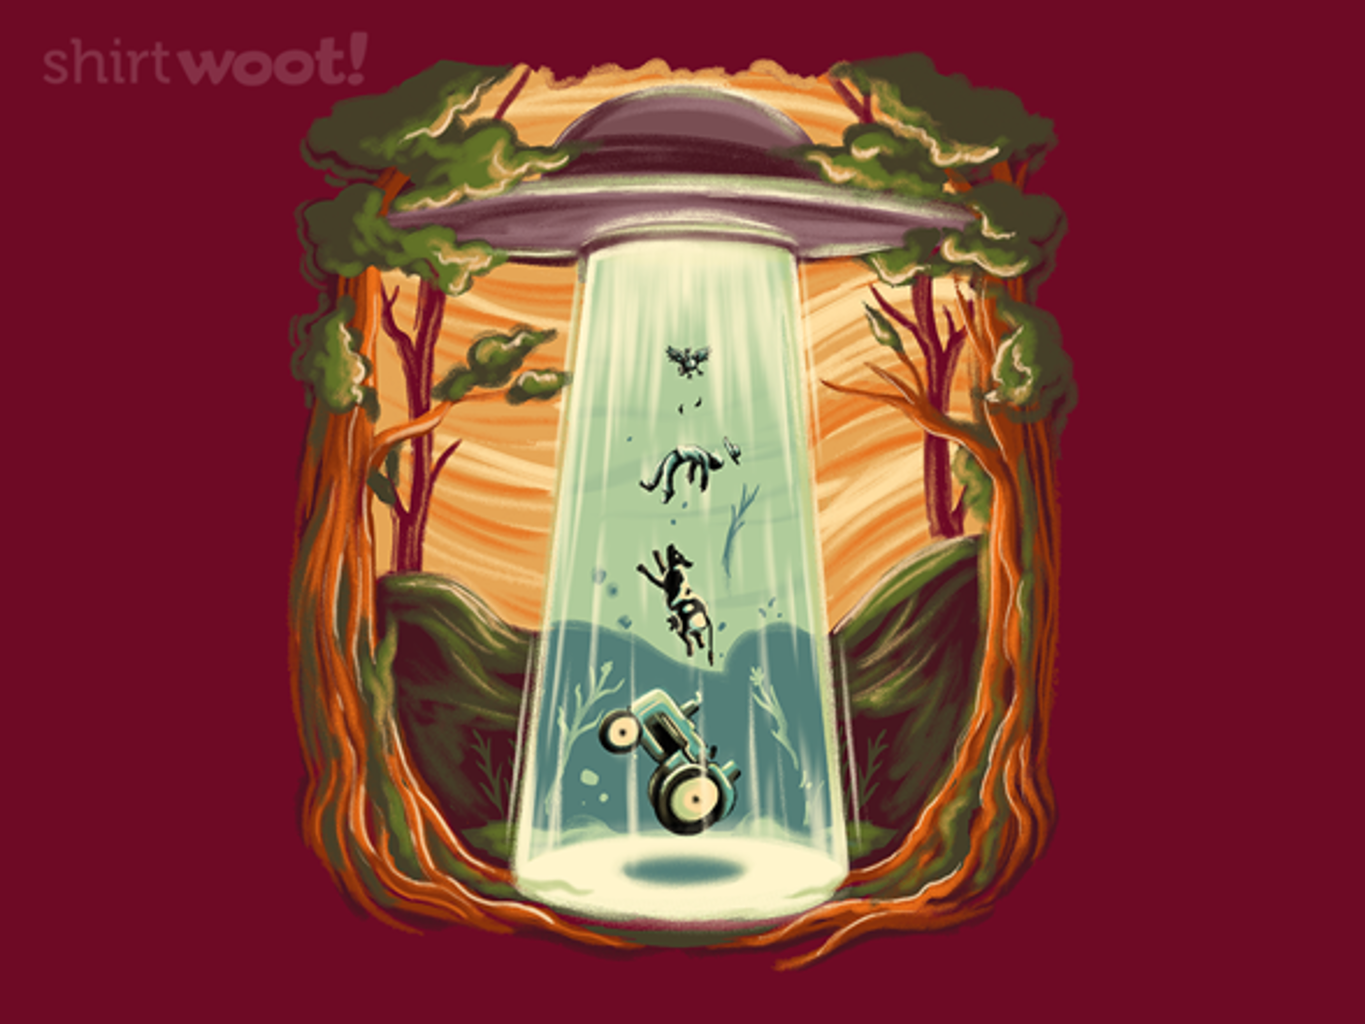 Woot!: The Harvest